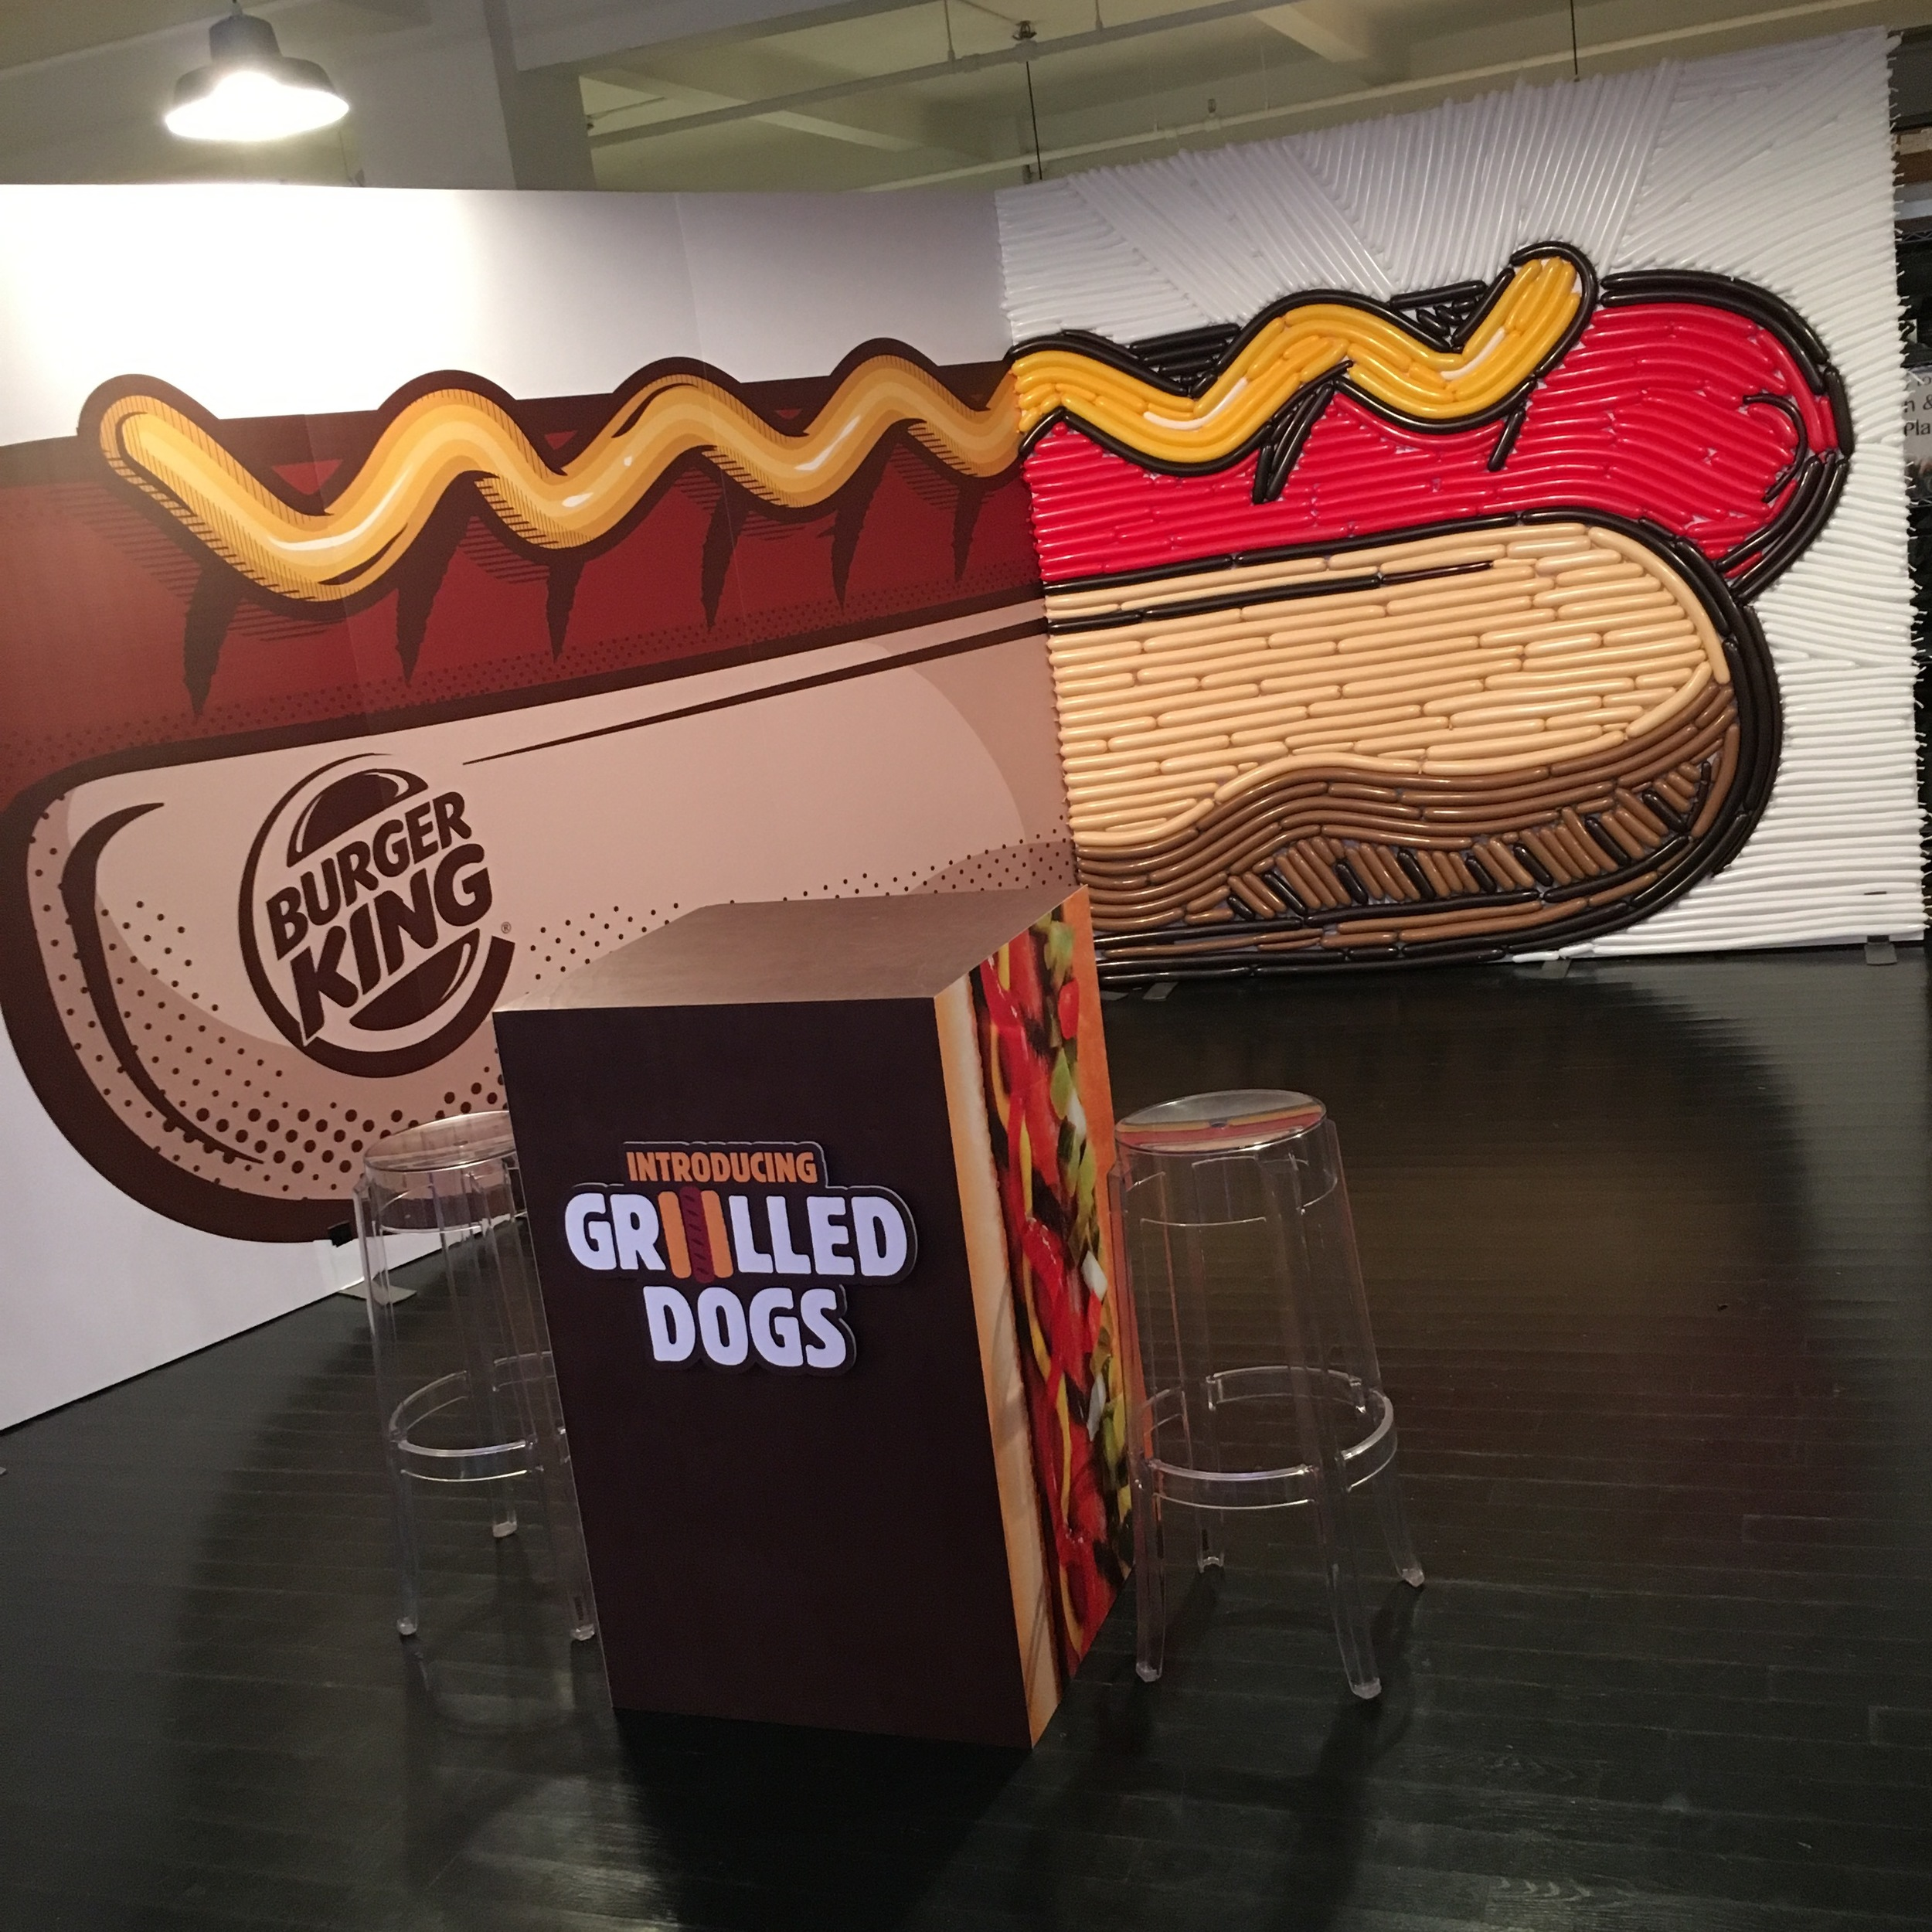 Burger King Grilled Dogs Launch